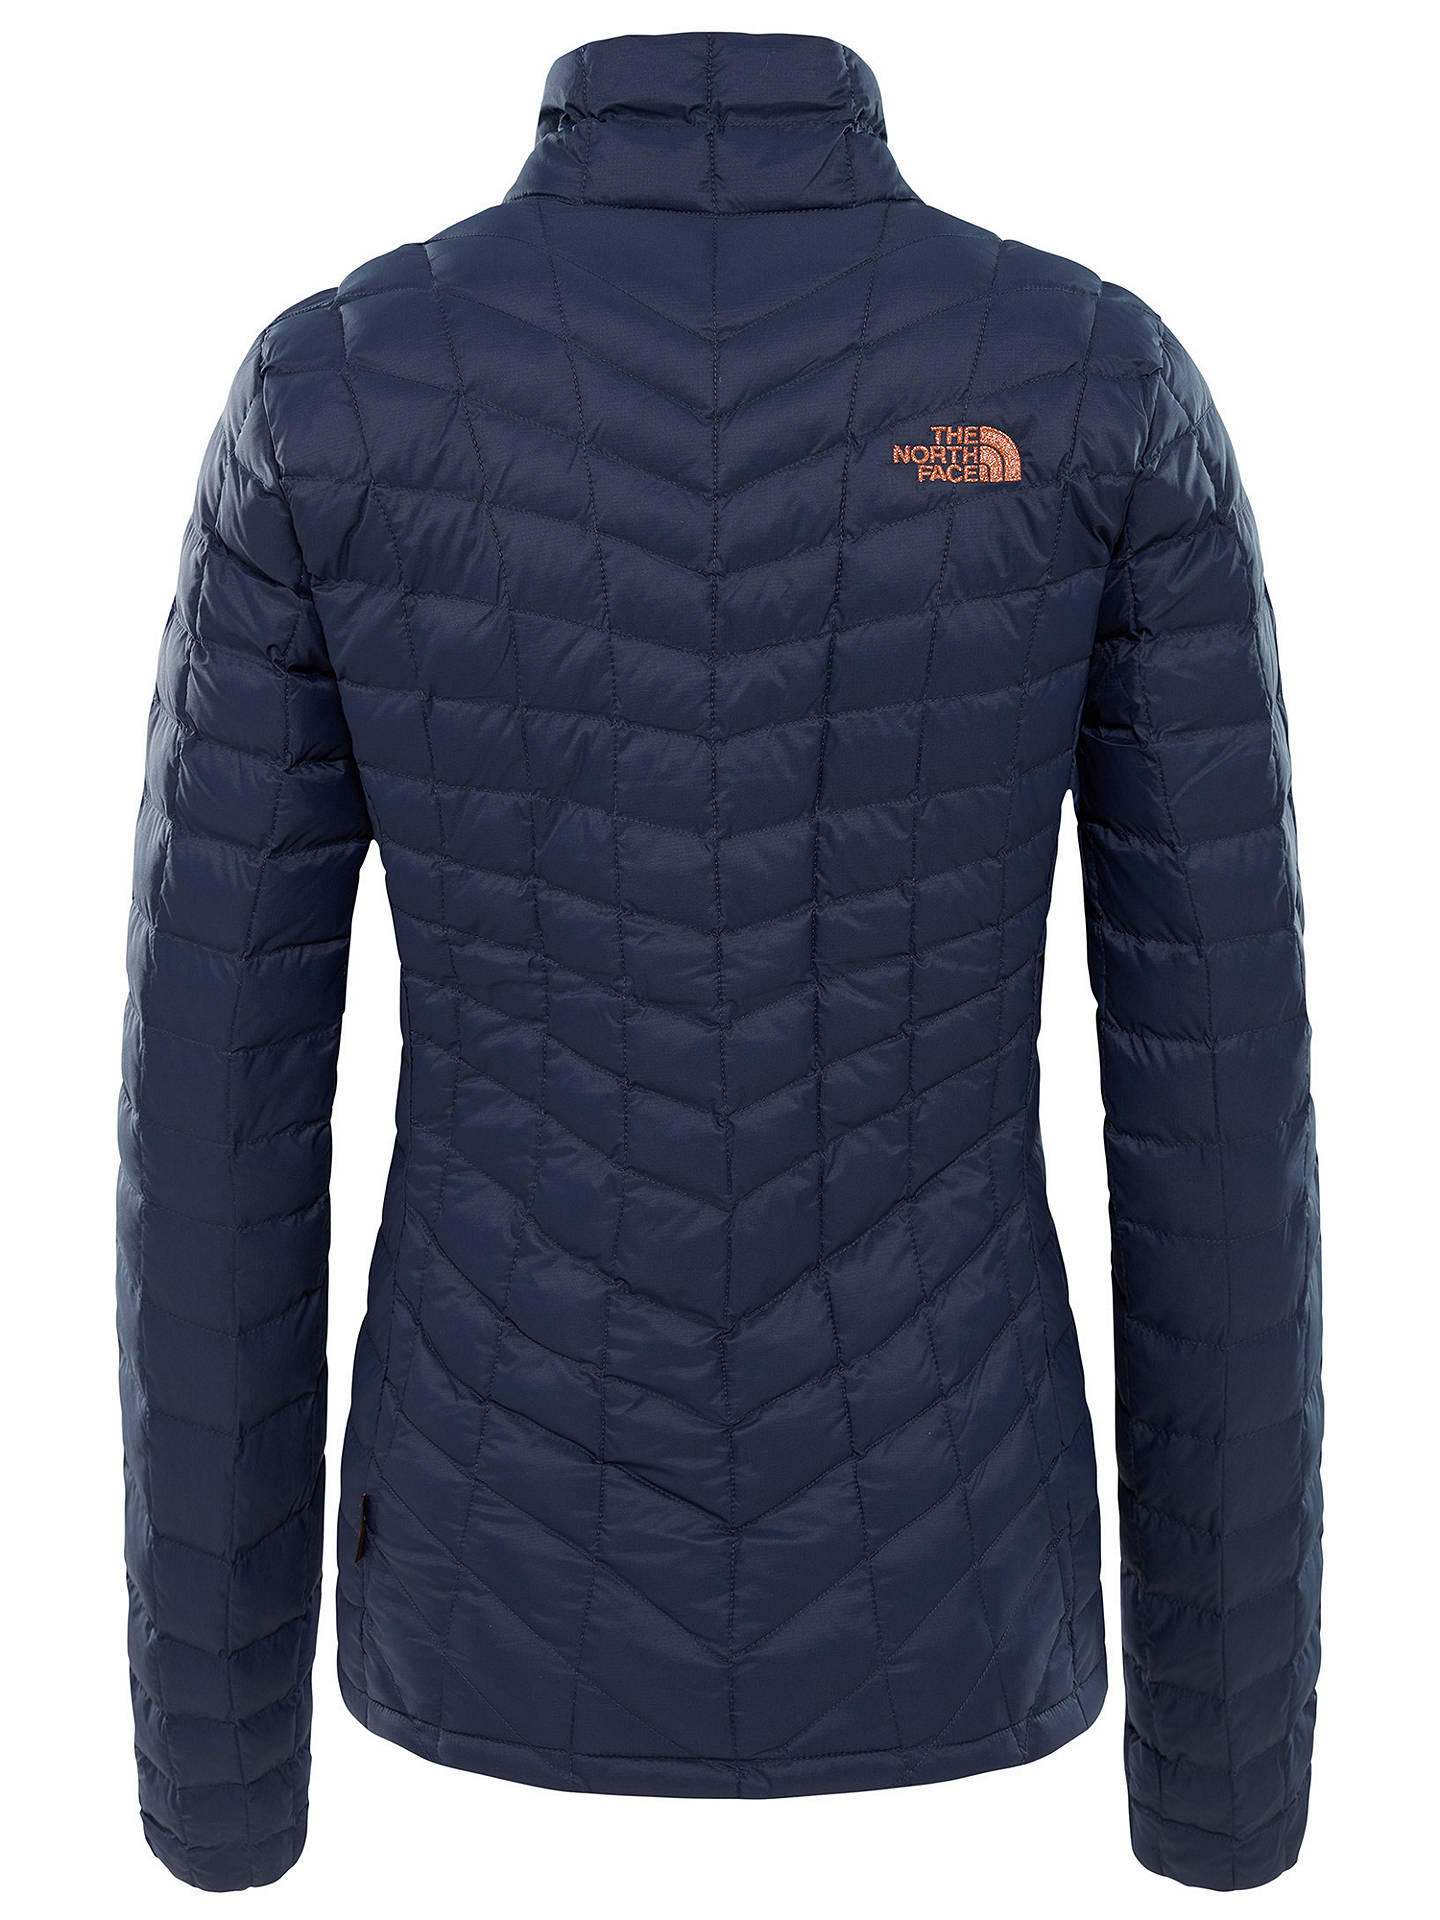 be6862828 The North Face Thermoball Full Zip Women's Jacket, Navy/Metallic ...